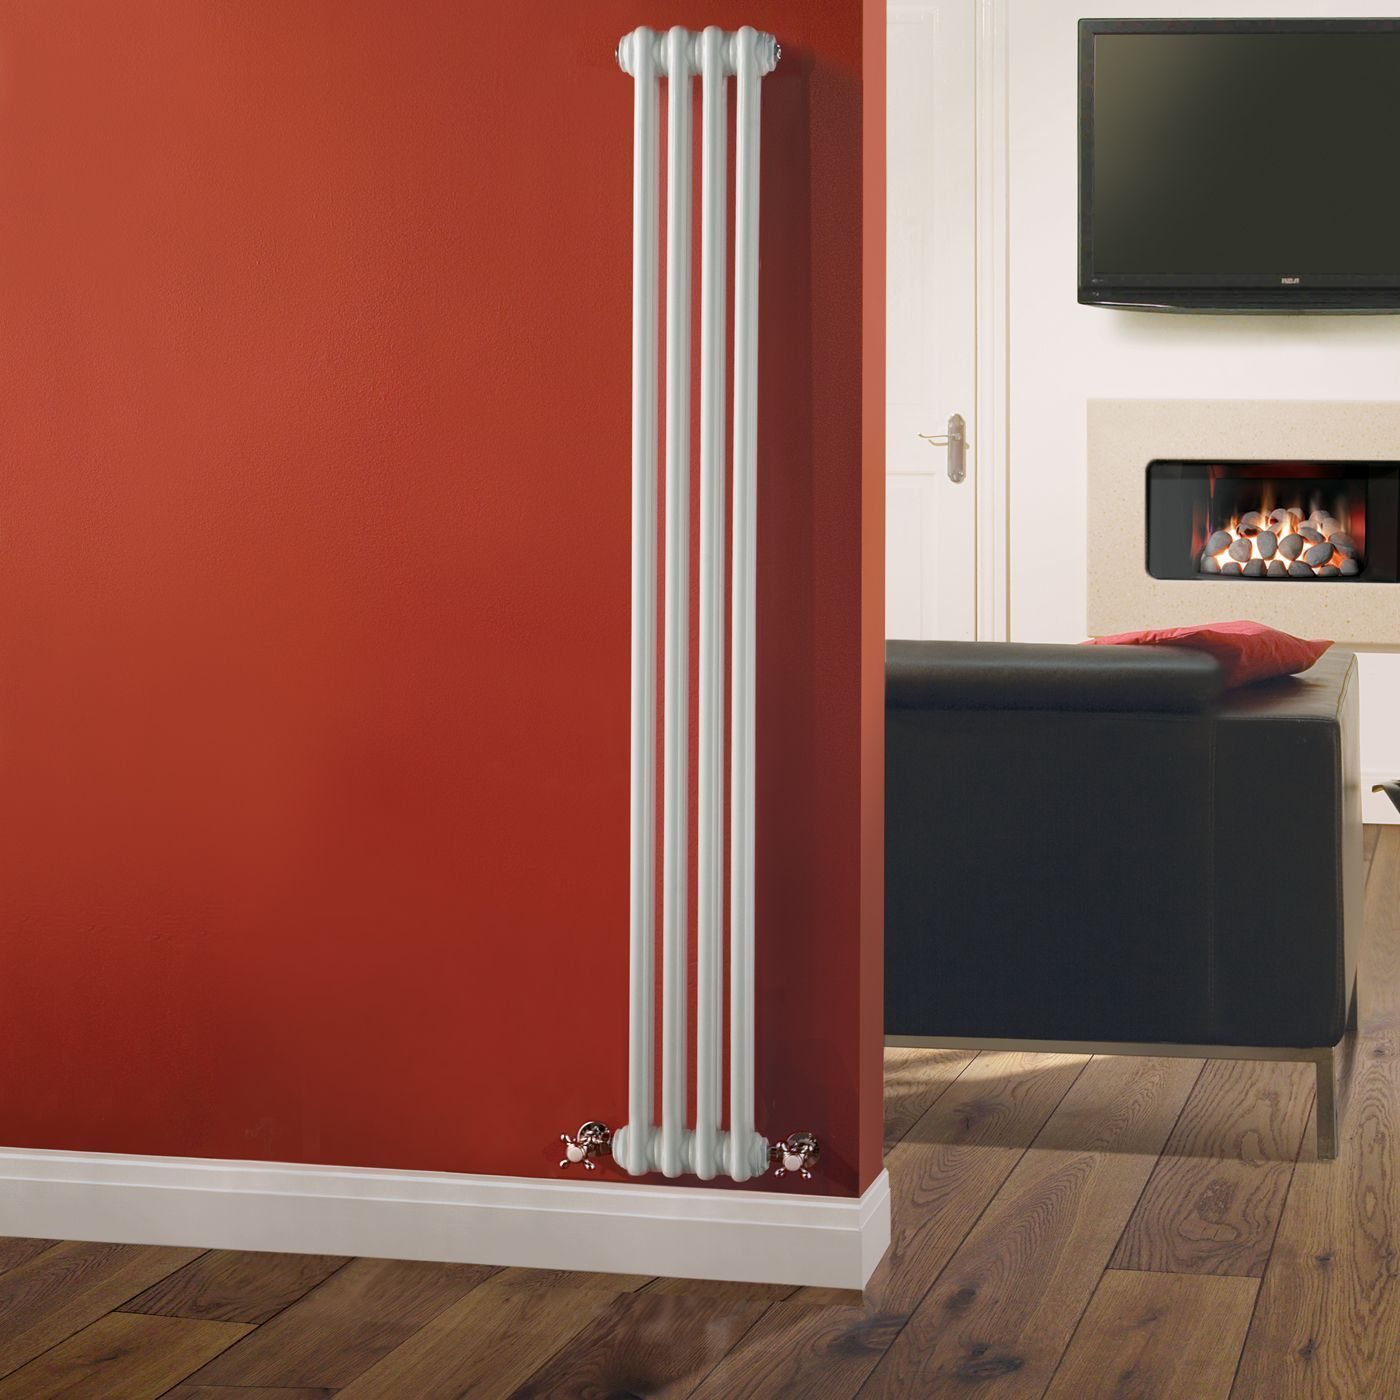 "Traditional 4 x 2 Column Radiator Cast Iron Style 59"" x 8"" - White Powder Coat Finish"